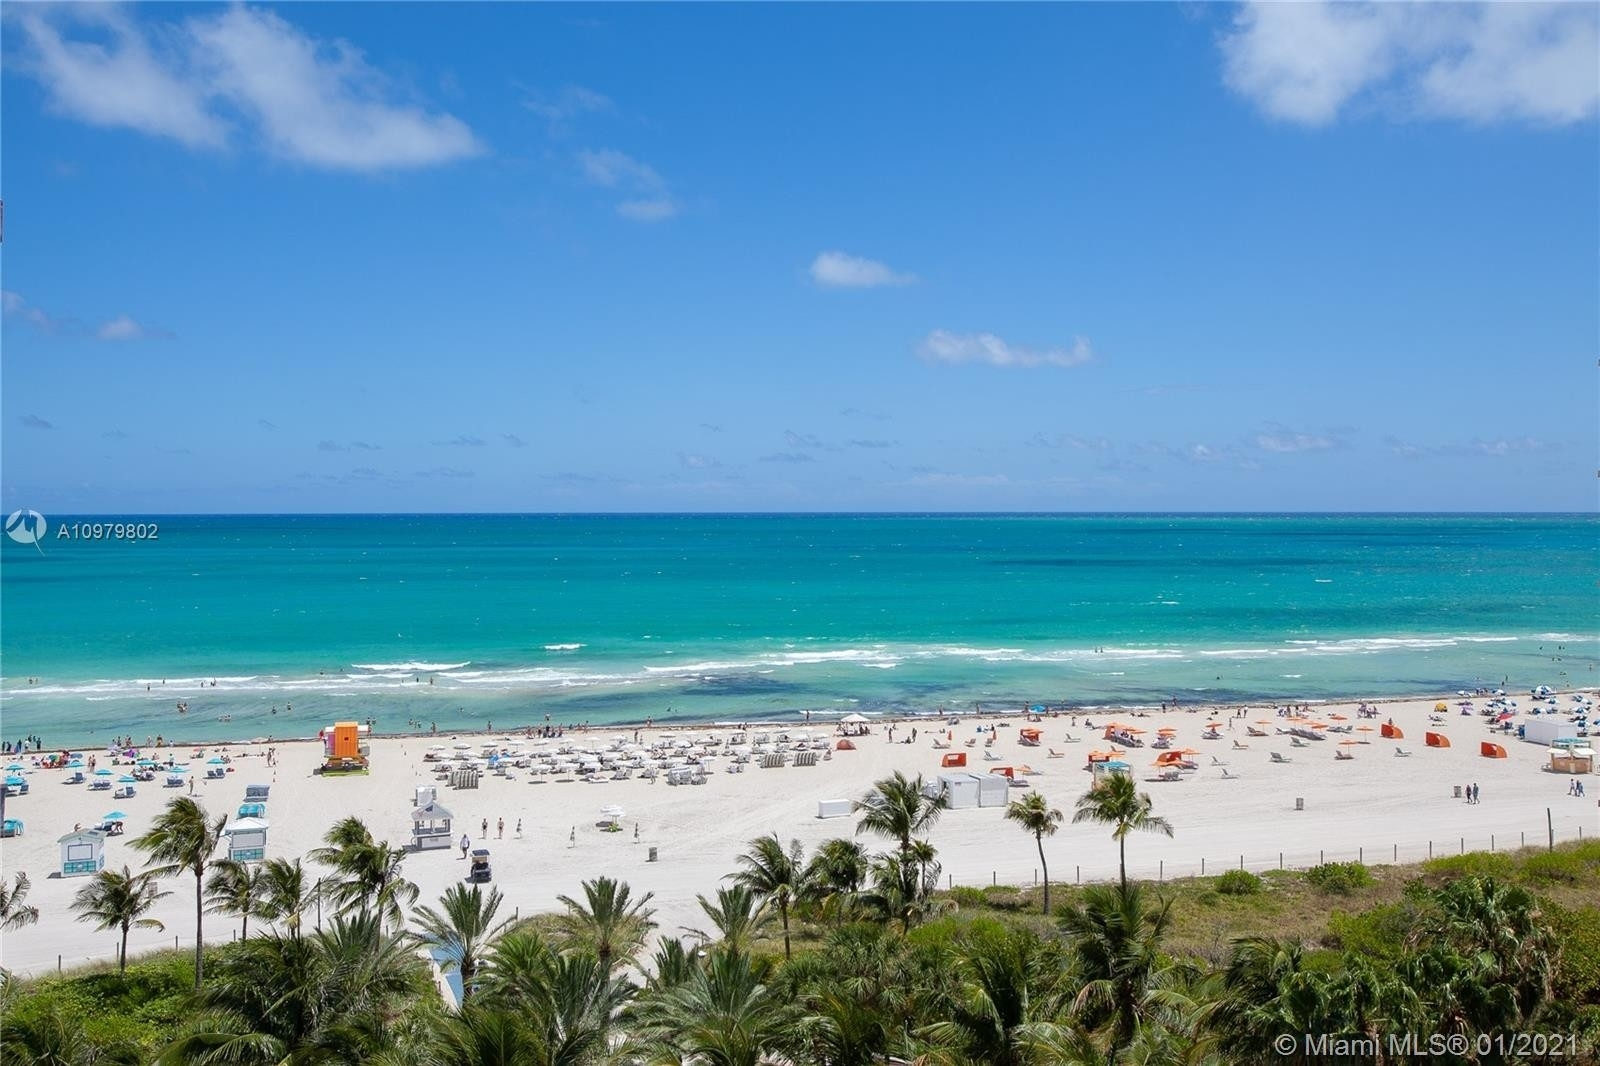 Property at 1500 Ocean Dr , 904 Miami Beach City Center, Miami Beach, FL 33139